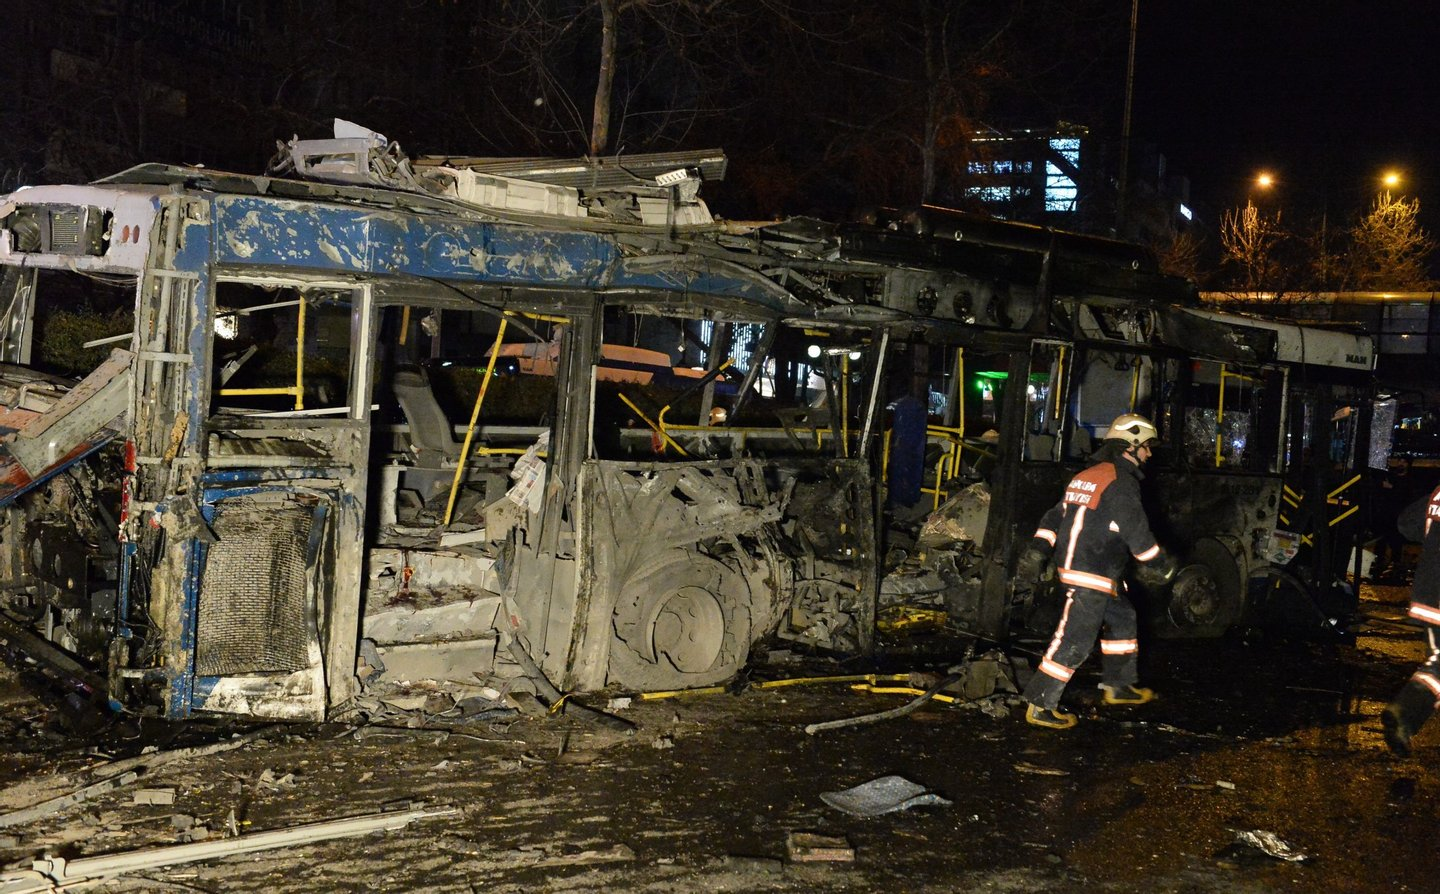 ANKARA, TURKEY - MARCH 13: The wreckage of a bus is seen after an explosion in Ankara's central Kizilay district on March 13, 2016 in Ankara, Turkey. The Ankara governor's office has reported that at least 27 people have been killed and 75 wounded in an explosion in the Turkish capital Ankara. The explosion is believed to have been a car bomb attack according to Ankara governor Mehmet Kiliclar. (Photo by Defne Karadeniz/Getty Images)